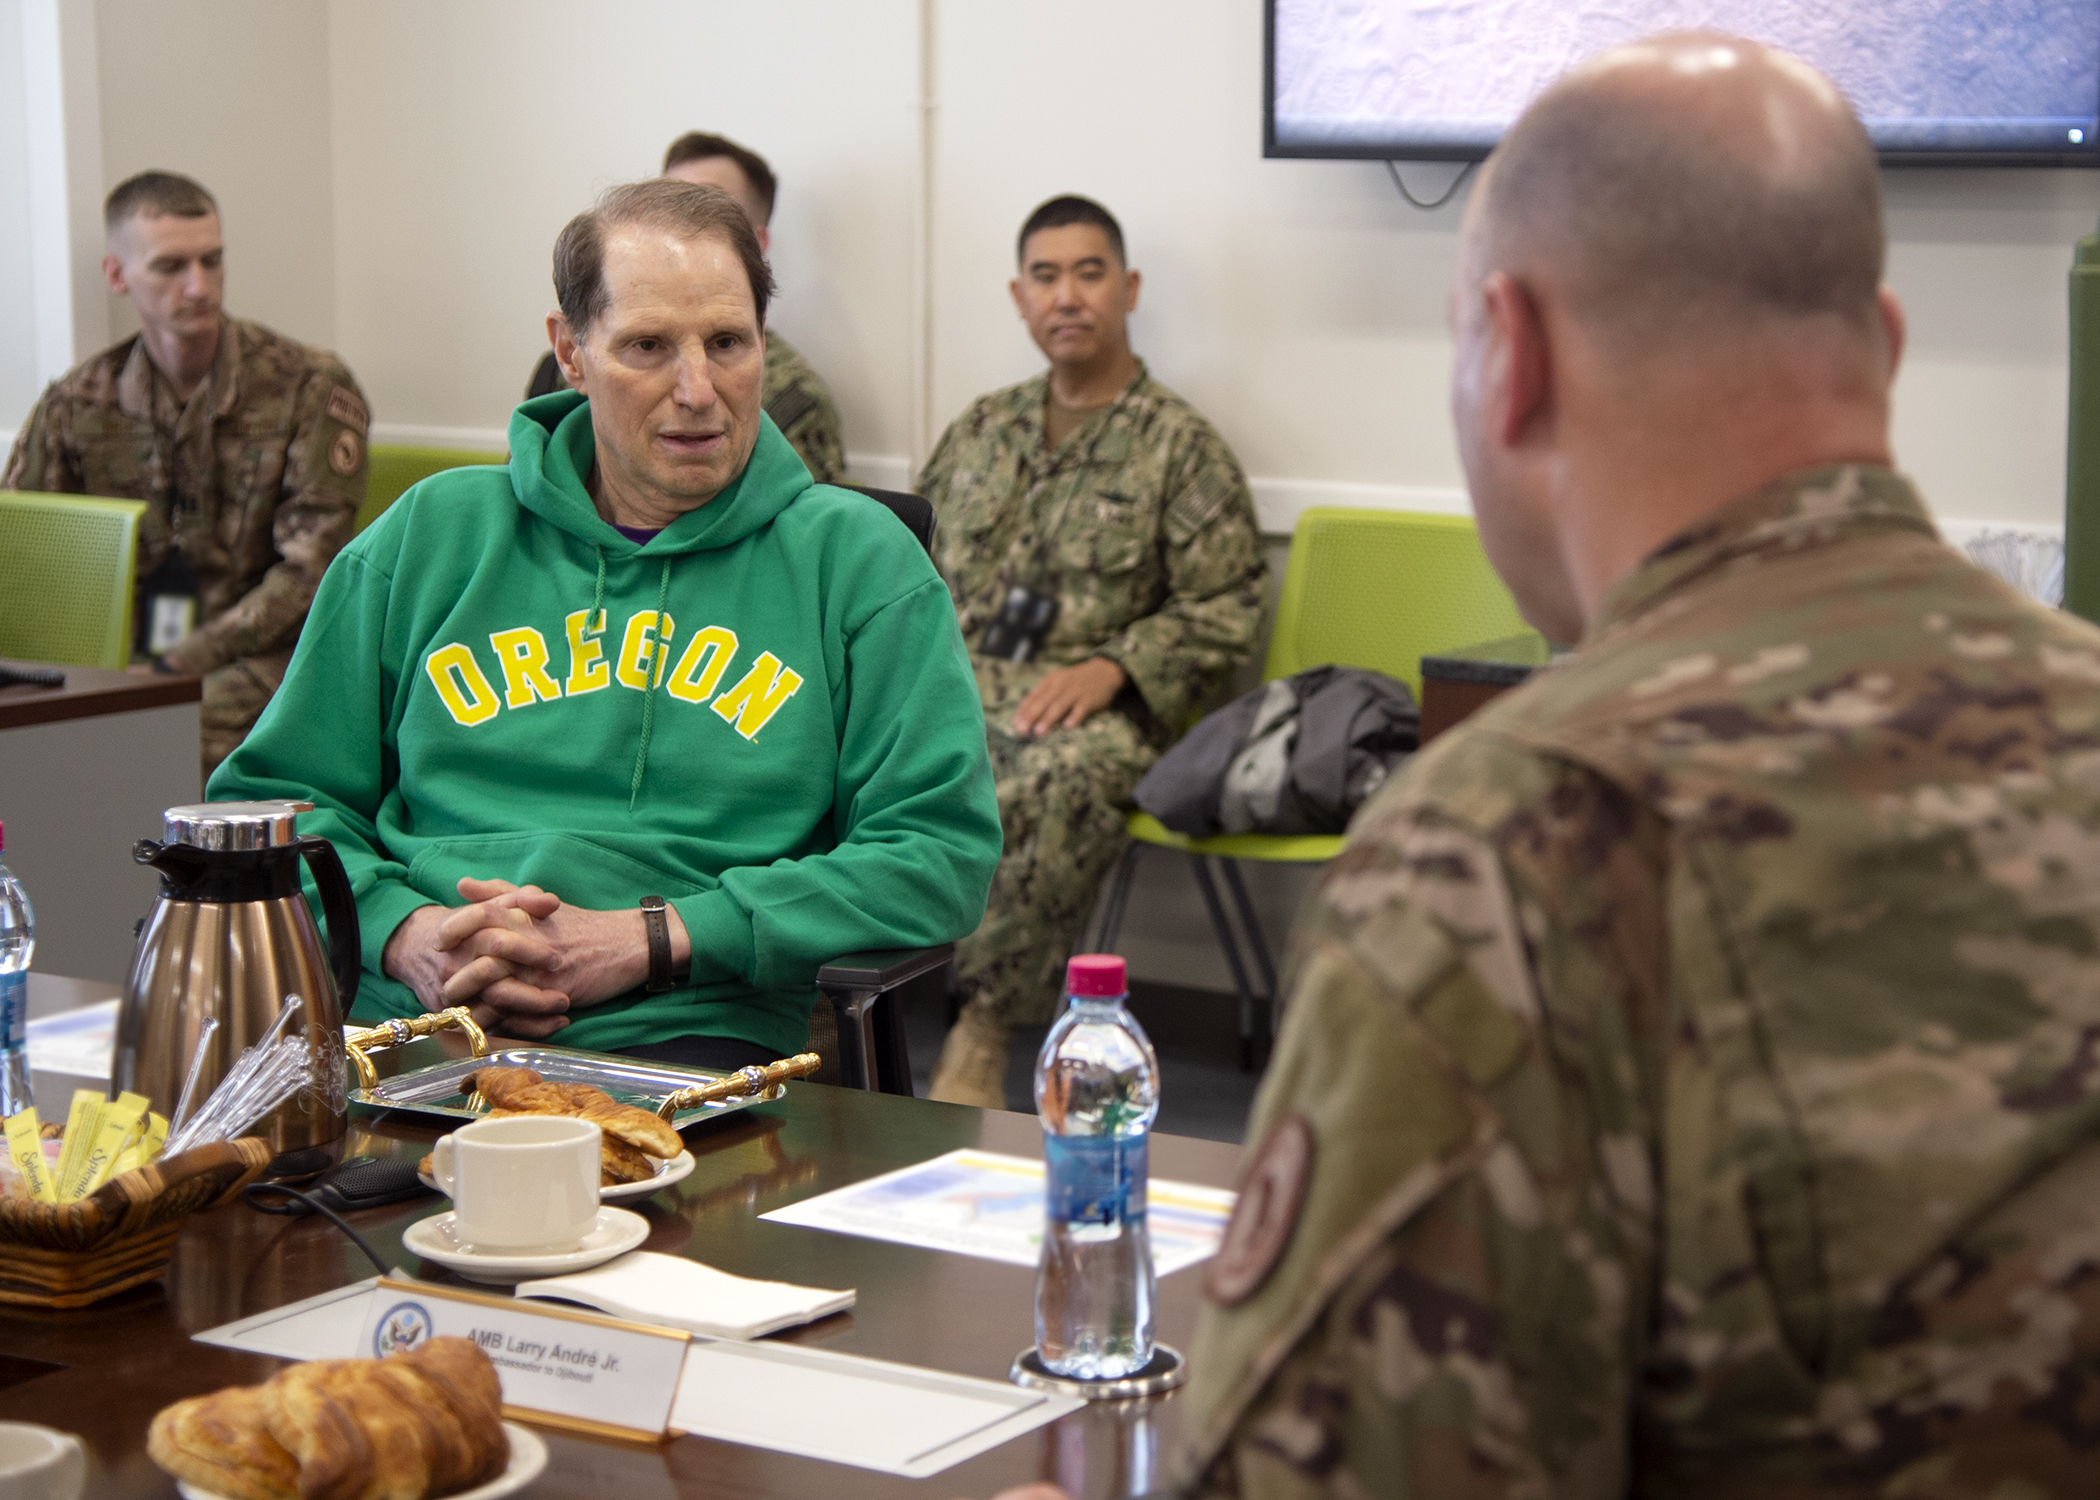 U.S. Sen. Ron Wyden, left, (D-OR) speaks with U.S. Air Force Brig. Gen. James R. Kriesel, right, deputy commanding general of Combined Joint Task Force-Horn of Africa (CJTF-HOA), during a briefing at CJTF-HOA, Djibouti, April 26, 2019. Wyden traveled to Djibouti to visit U.S. forces and embassy officials and to meet with national defense leaders to understand the current posture of readiness and security. (U.S. Navy photo by Mass Communication Specialist 1st Class Nick Scott)